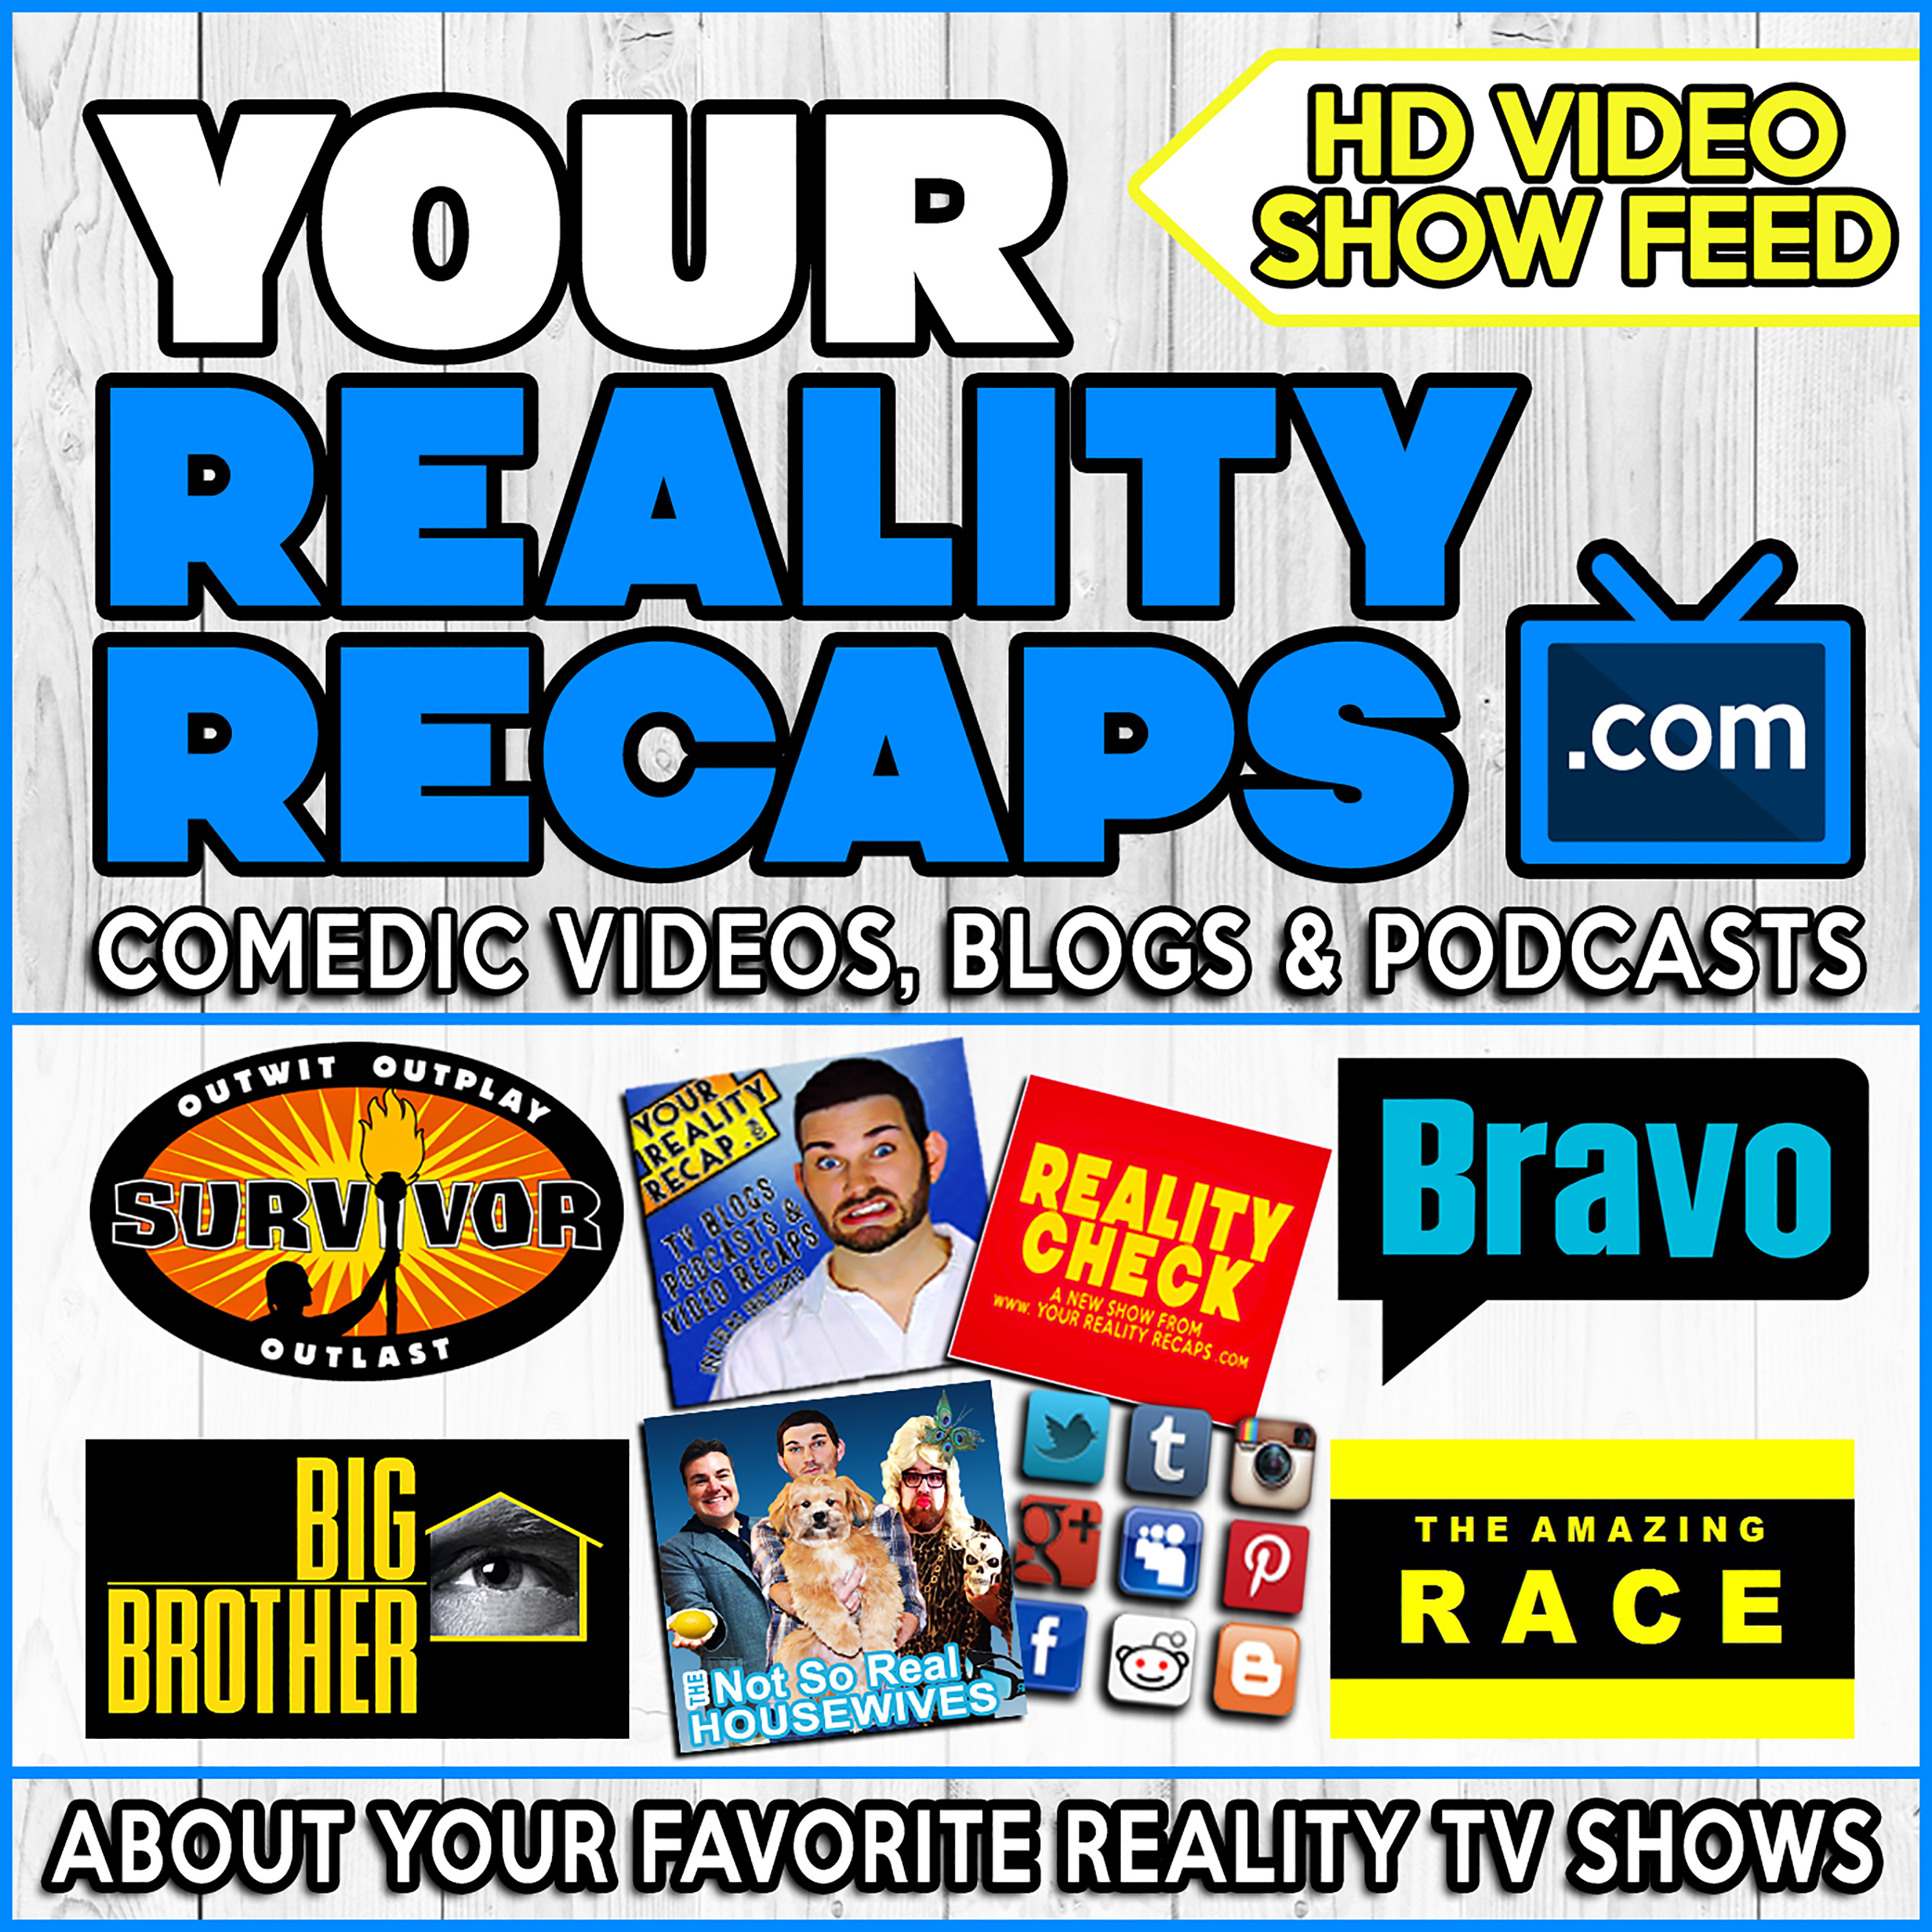 Your Reality Recaps: ALL SHOWS VIDEO FEED